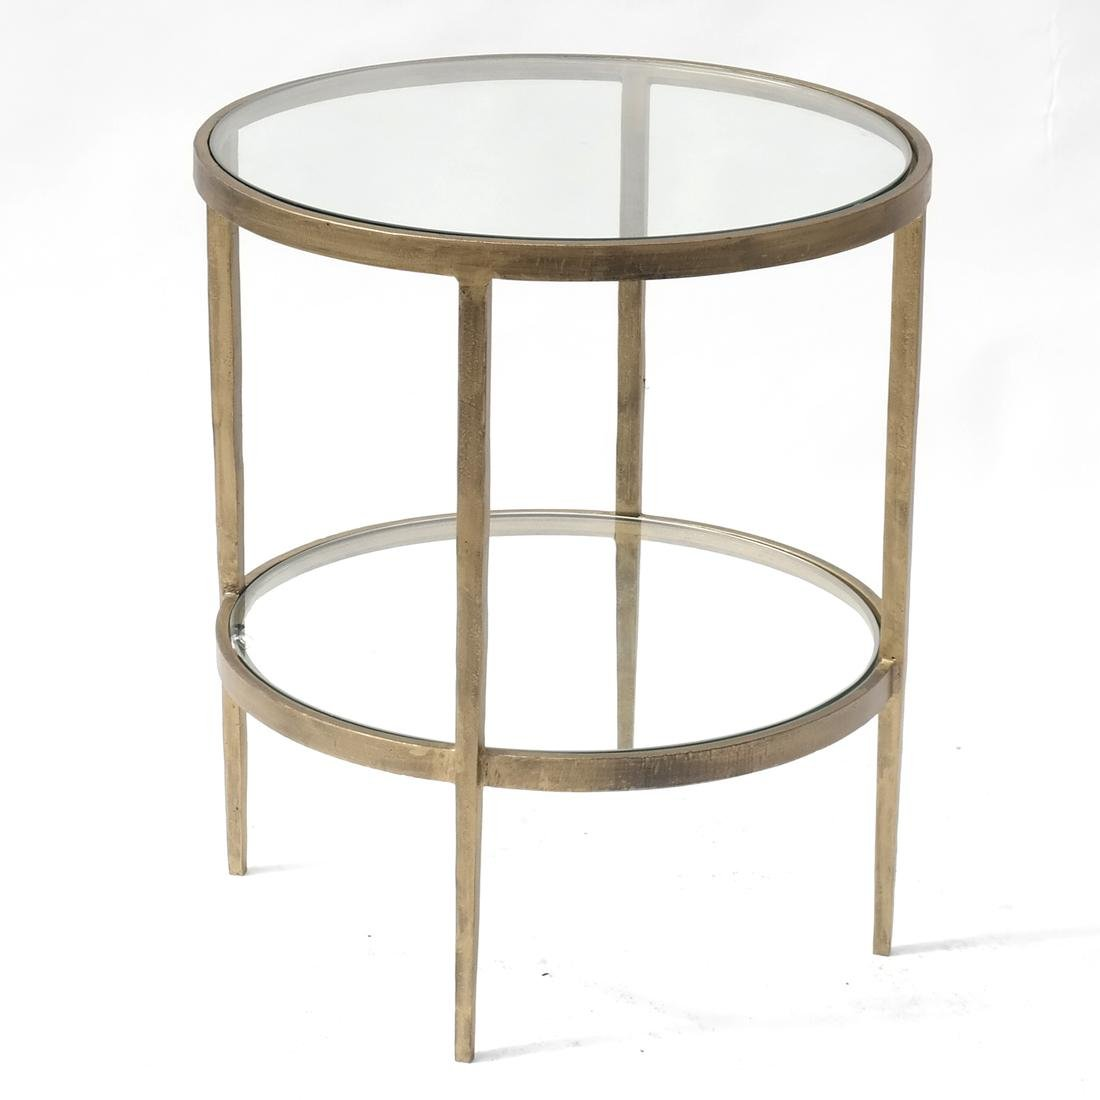 Modern Two-Tier Round Table